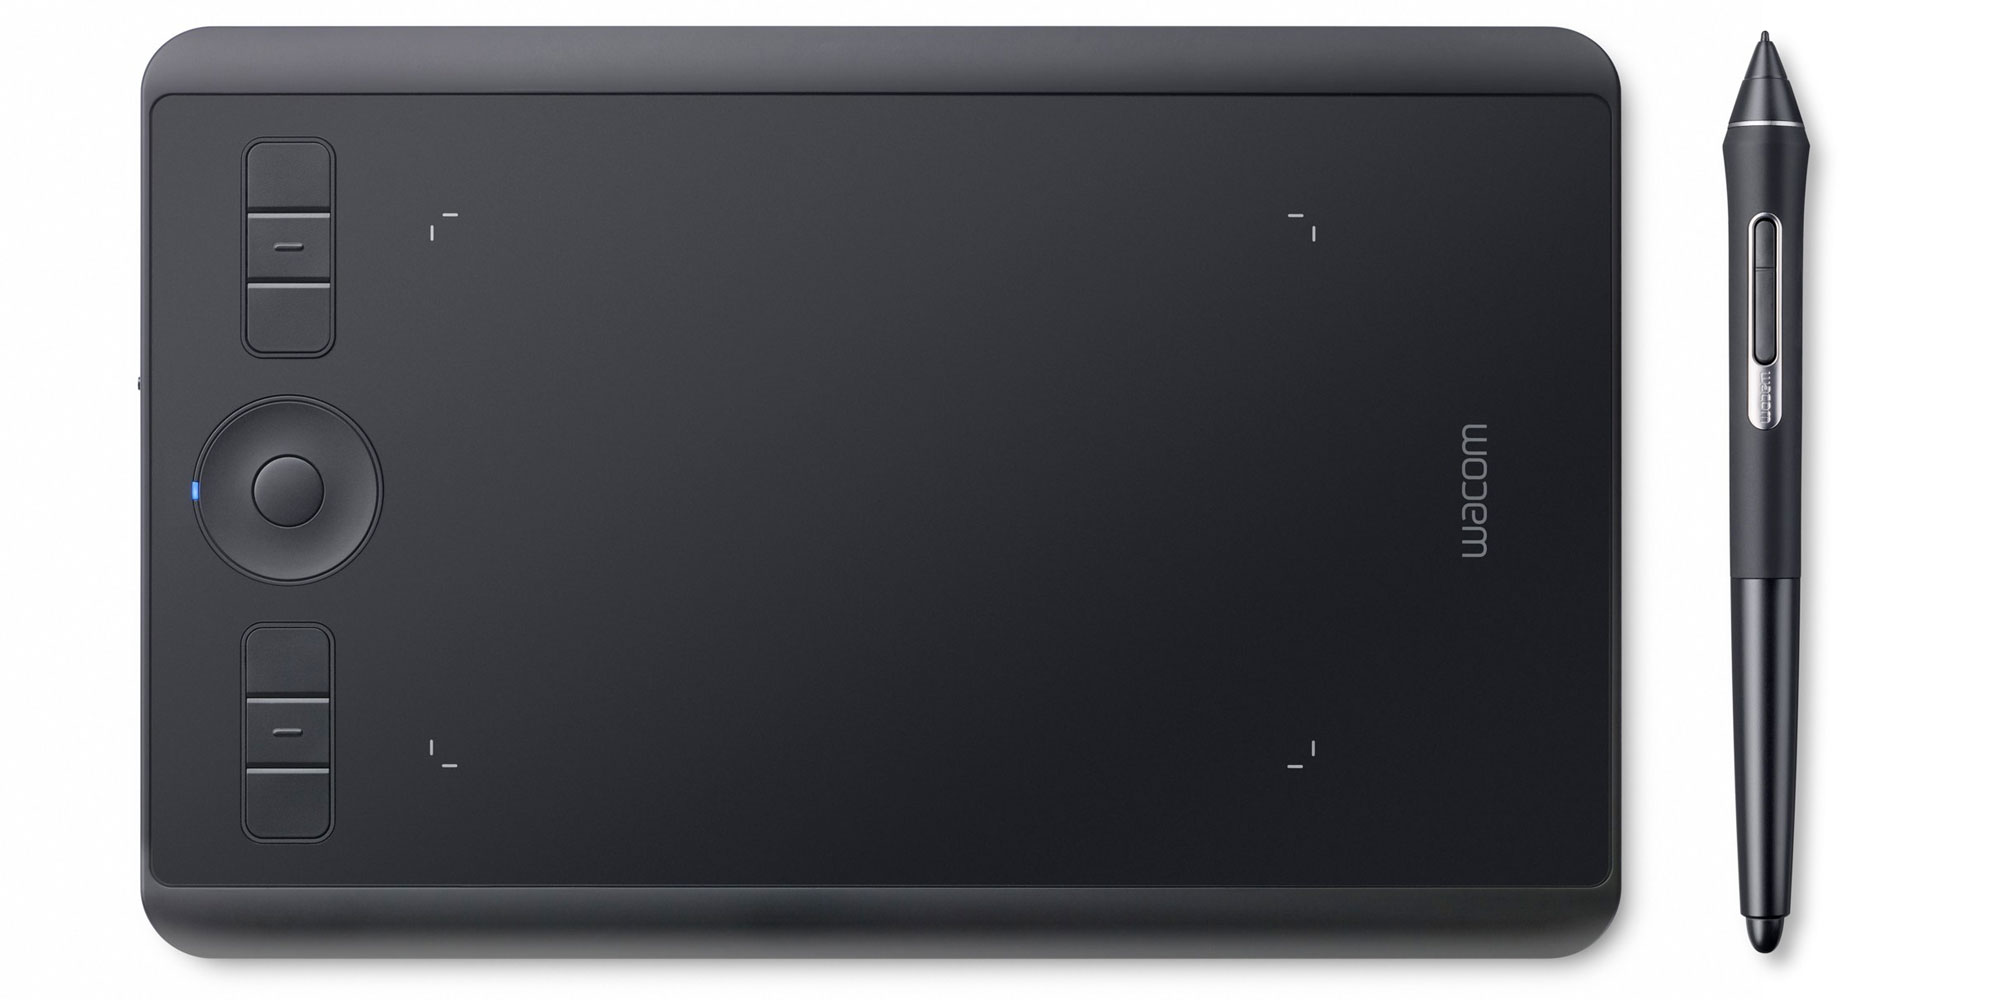 Wacom's latest Intuos Pro Small offers a highly-sensitive portable Bluetooth drawing tablet